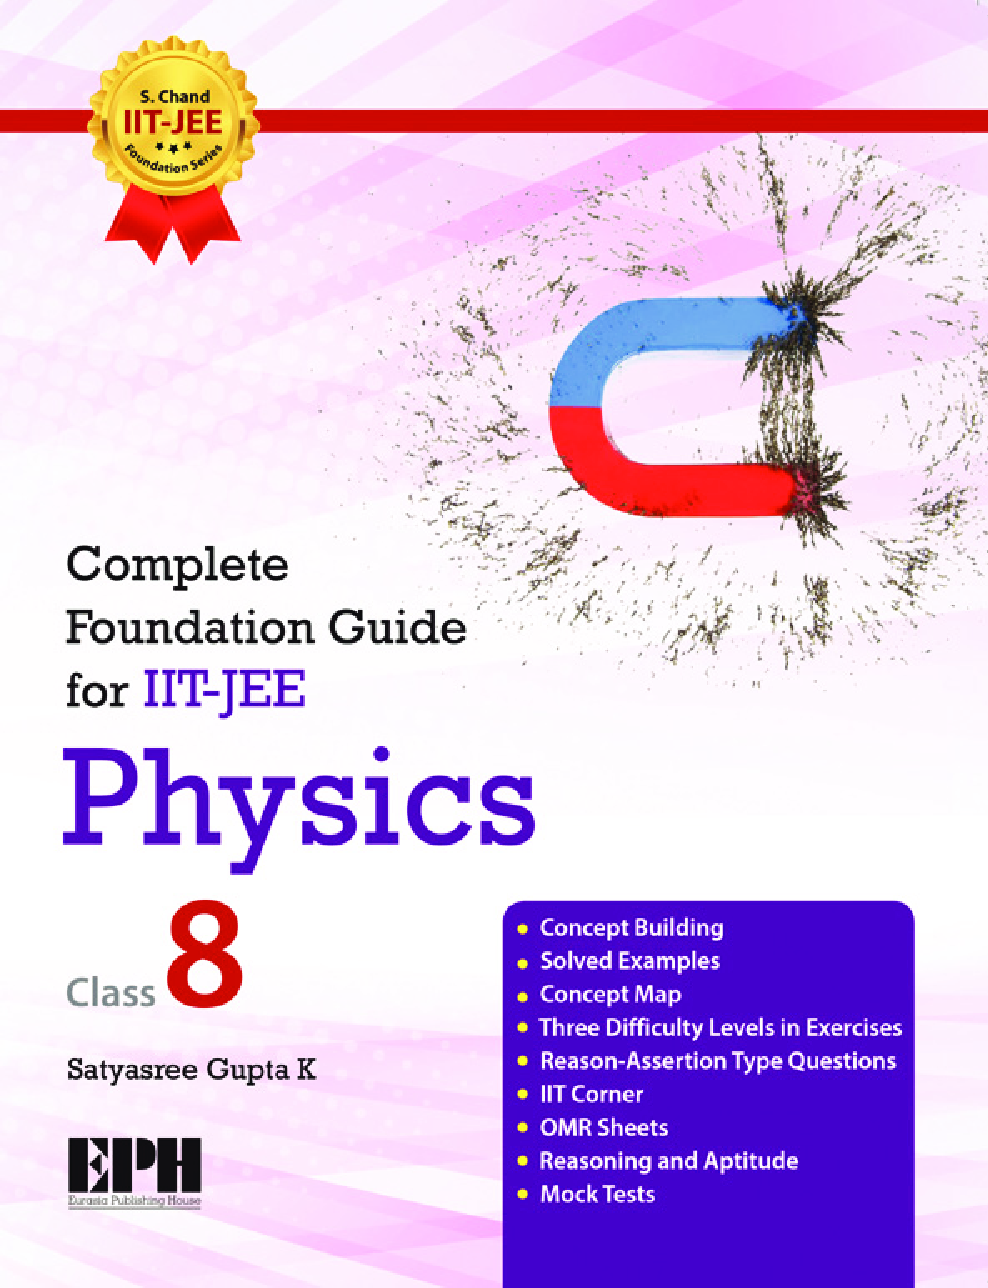 Complete Foundation Guide For IIT Jee, Physics Class 8 - Page 1